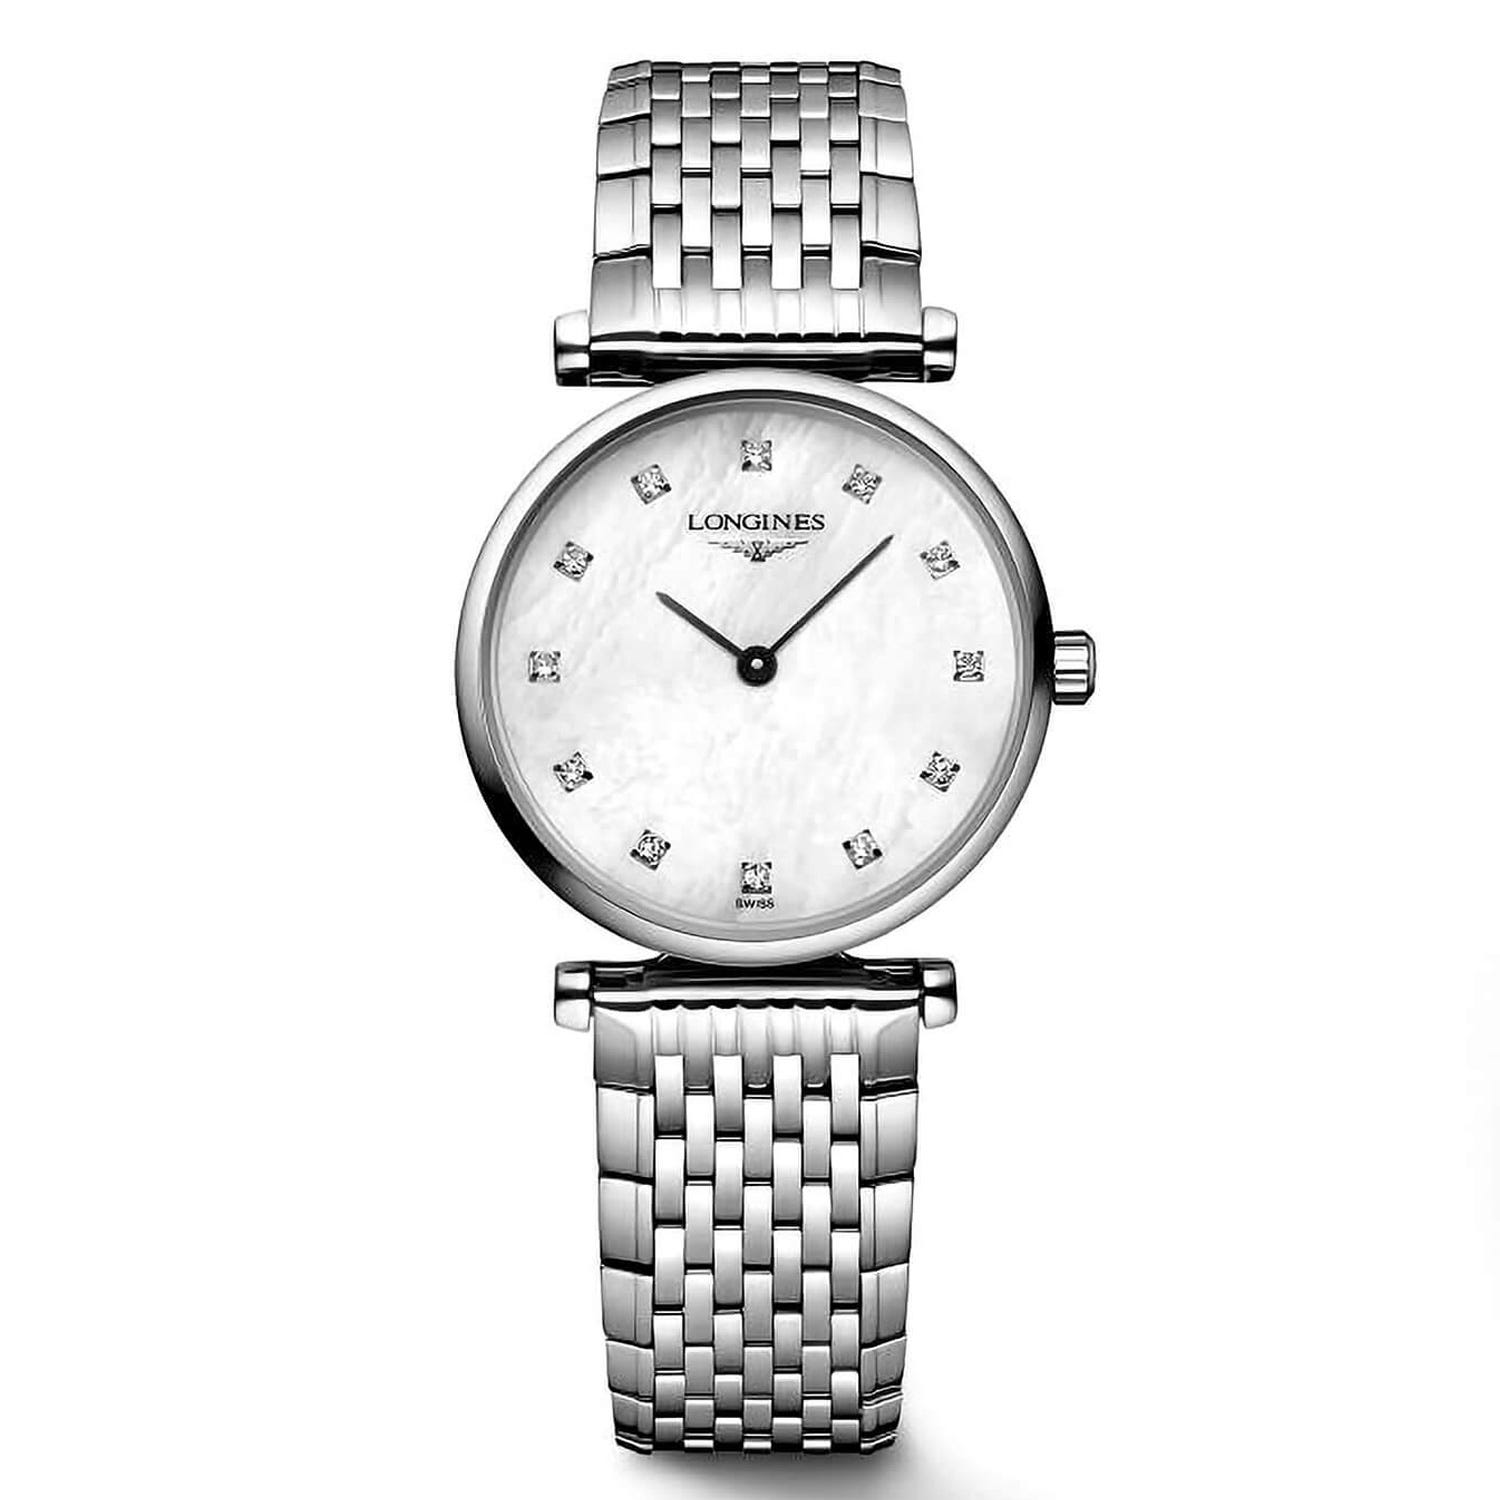 Longines La Grande Classique ladies' stainless steel diamond-set mother of pearl watch